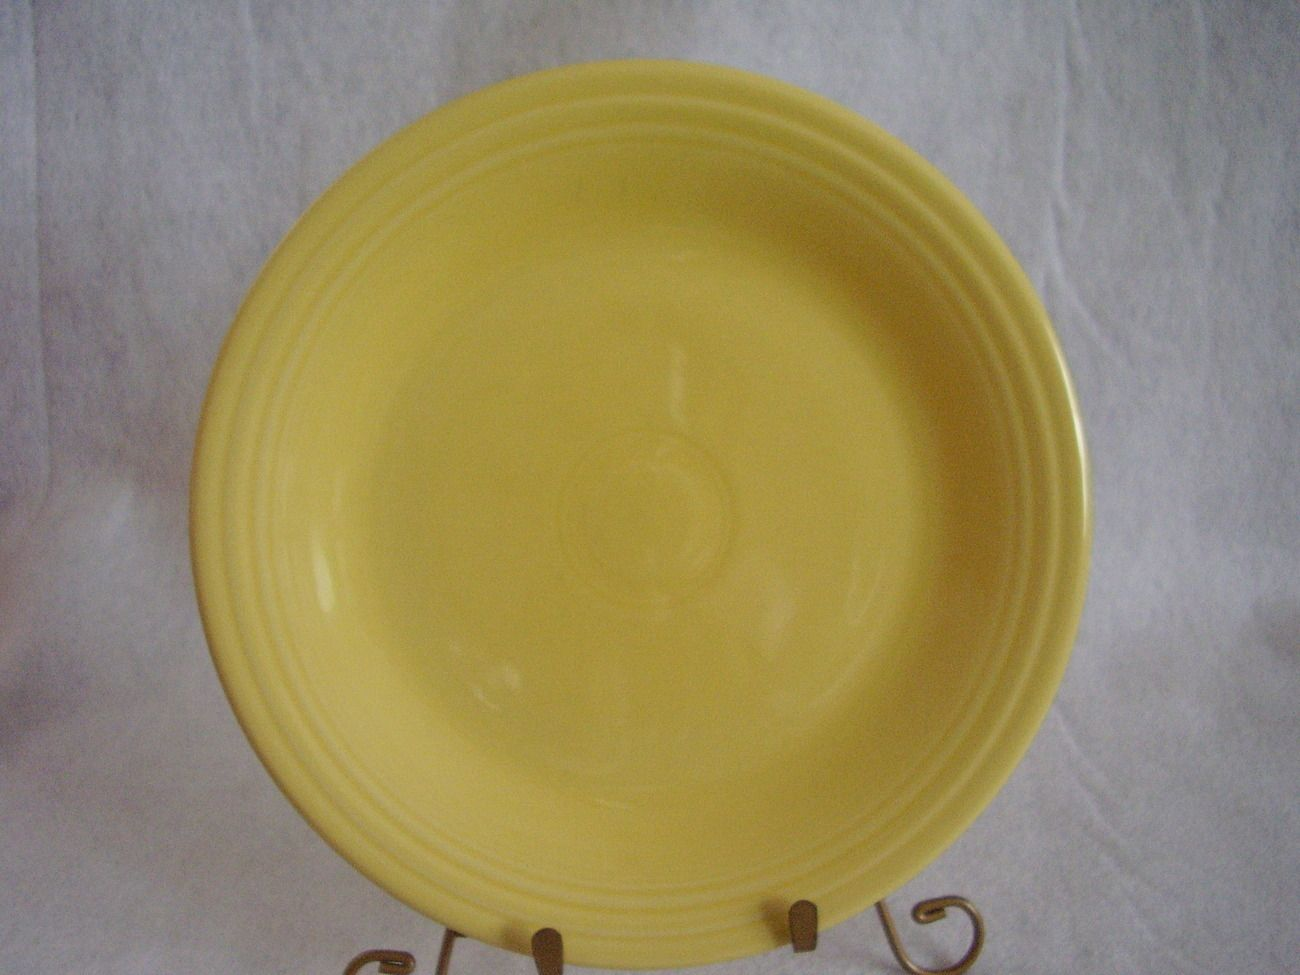 dinner plates | yellow dinner plate fiesta k fiestaware light yellow dinner plate . & dinner plates | yellow dinner plate fiesta k fiestaware light yellow ...